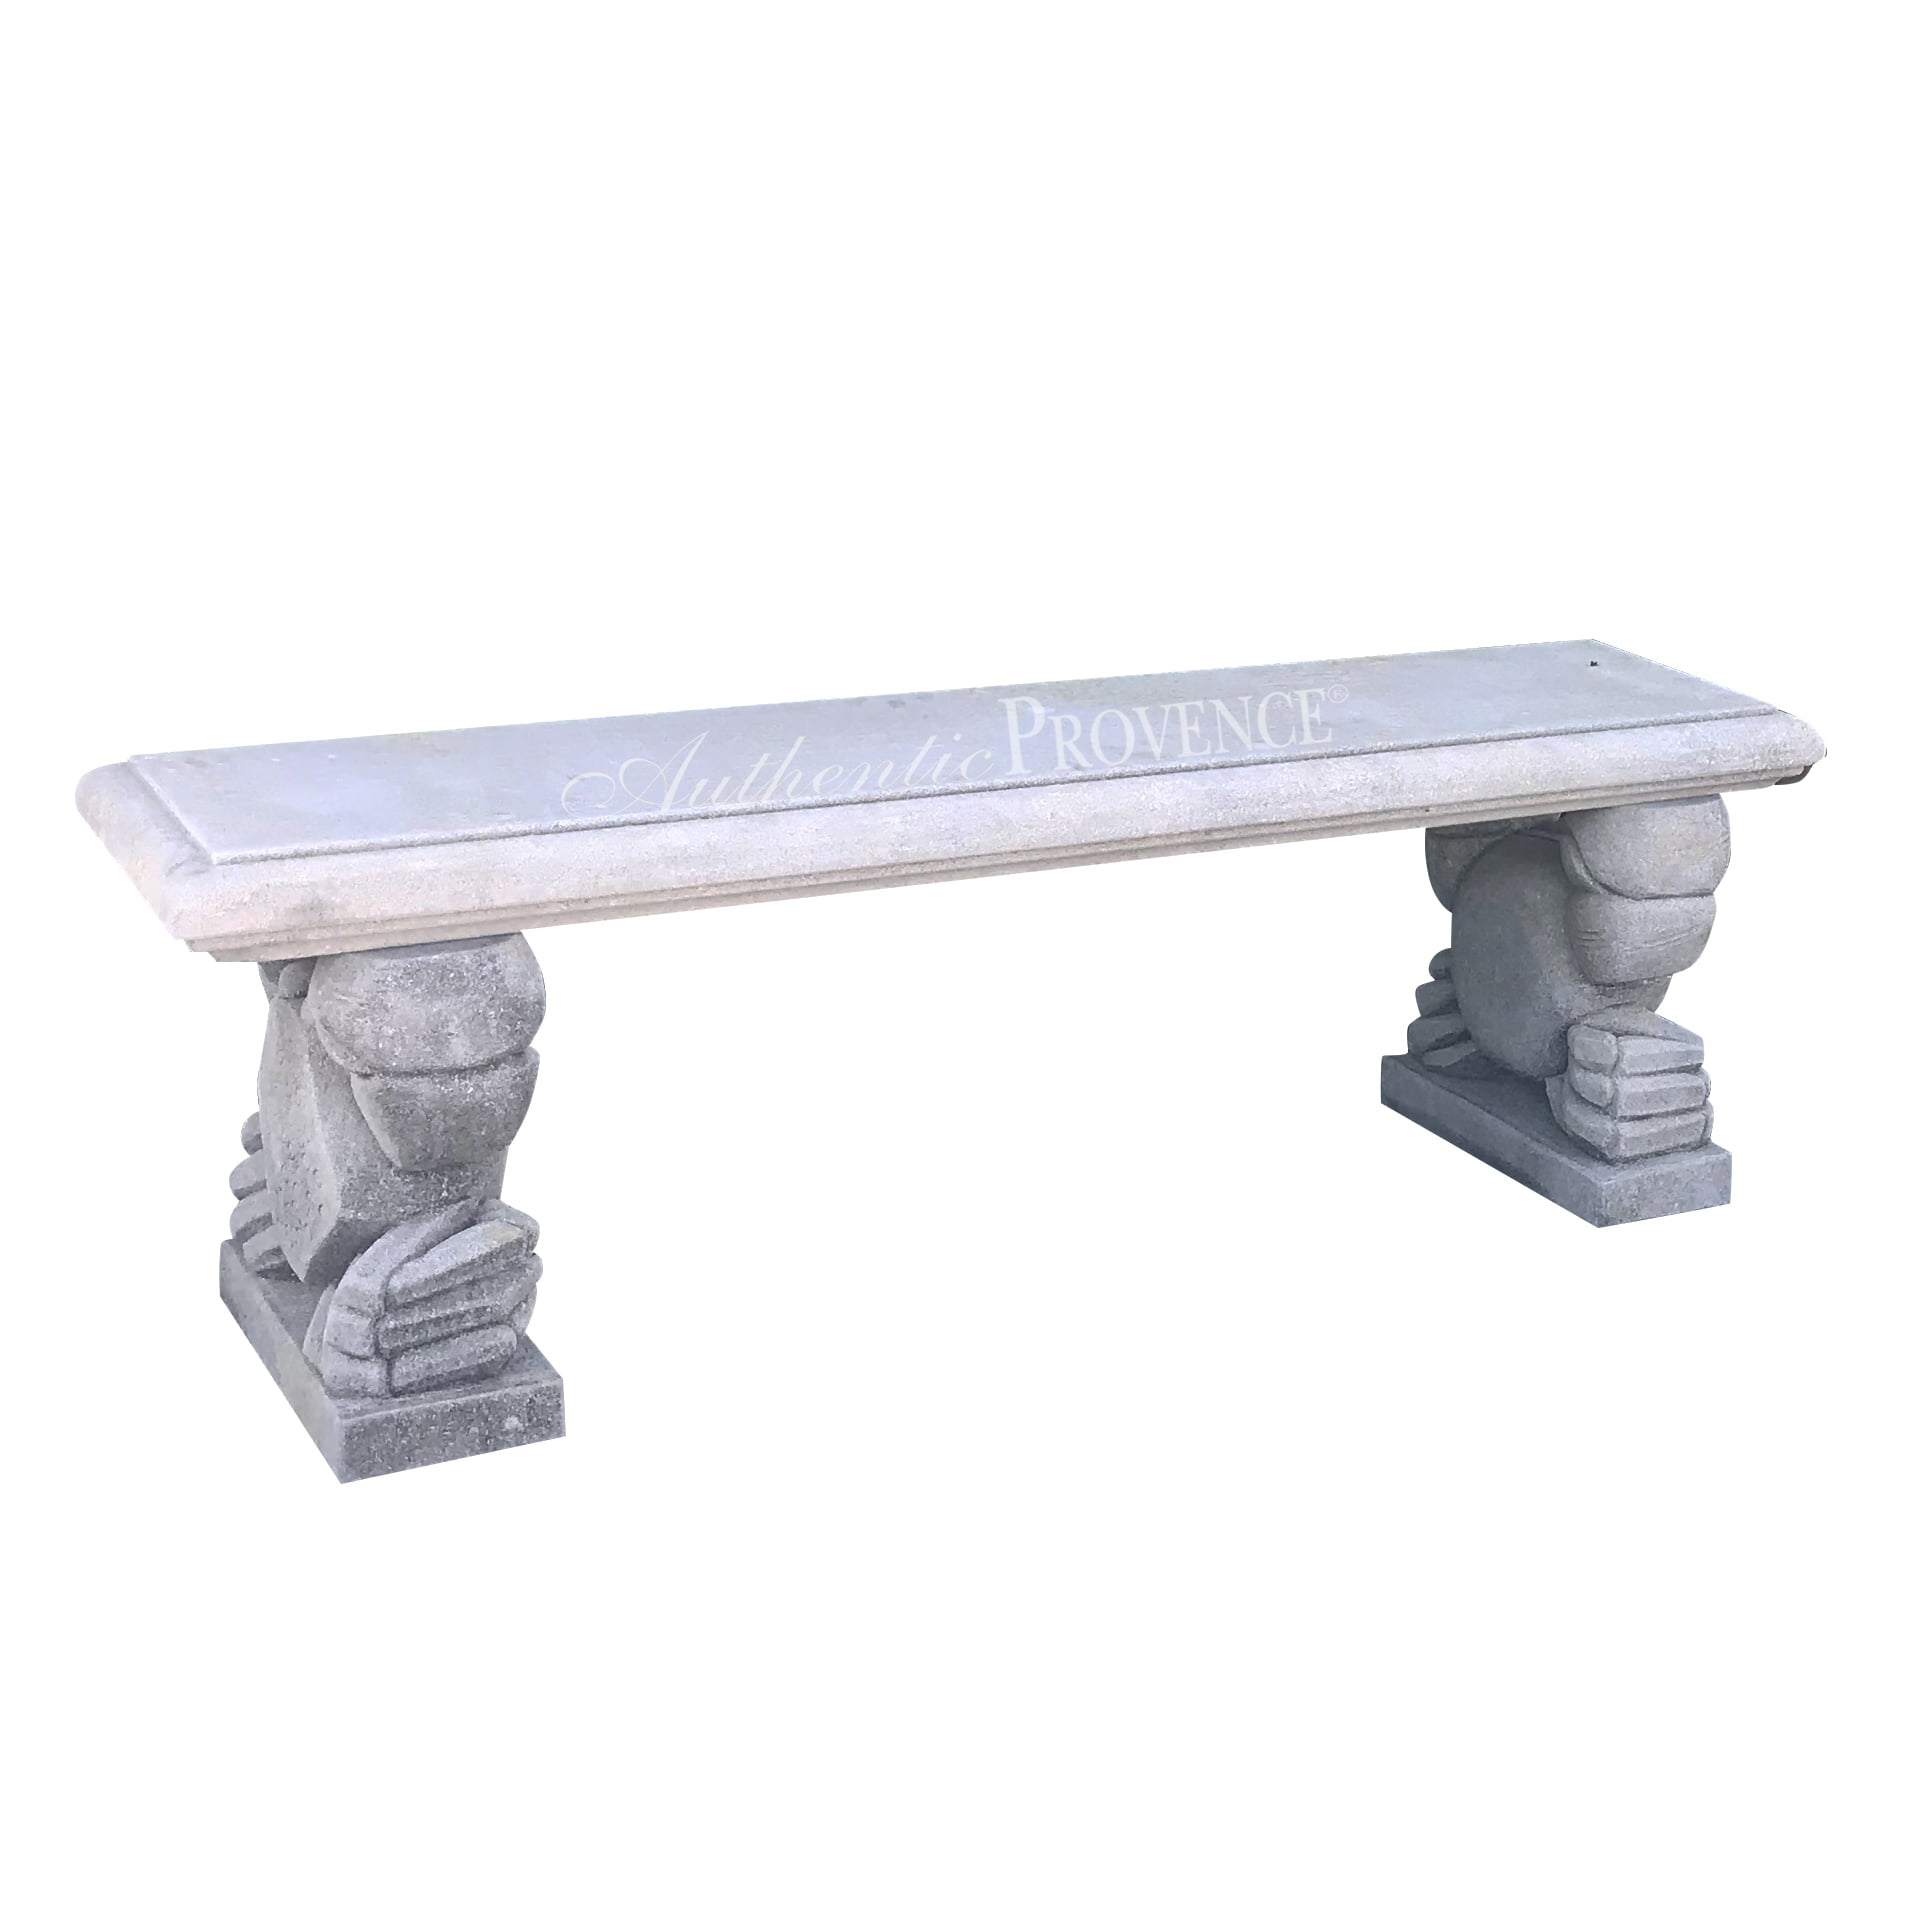 Unique Pair of Limestone Benches